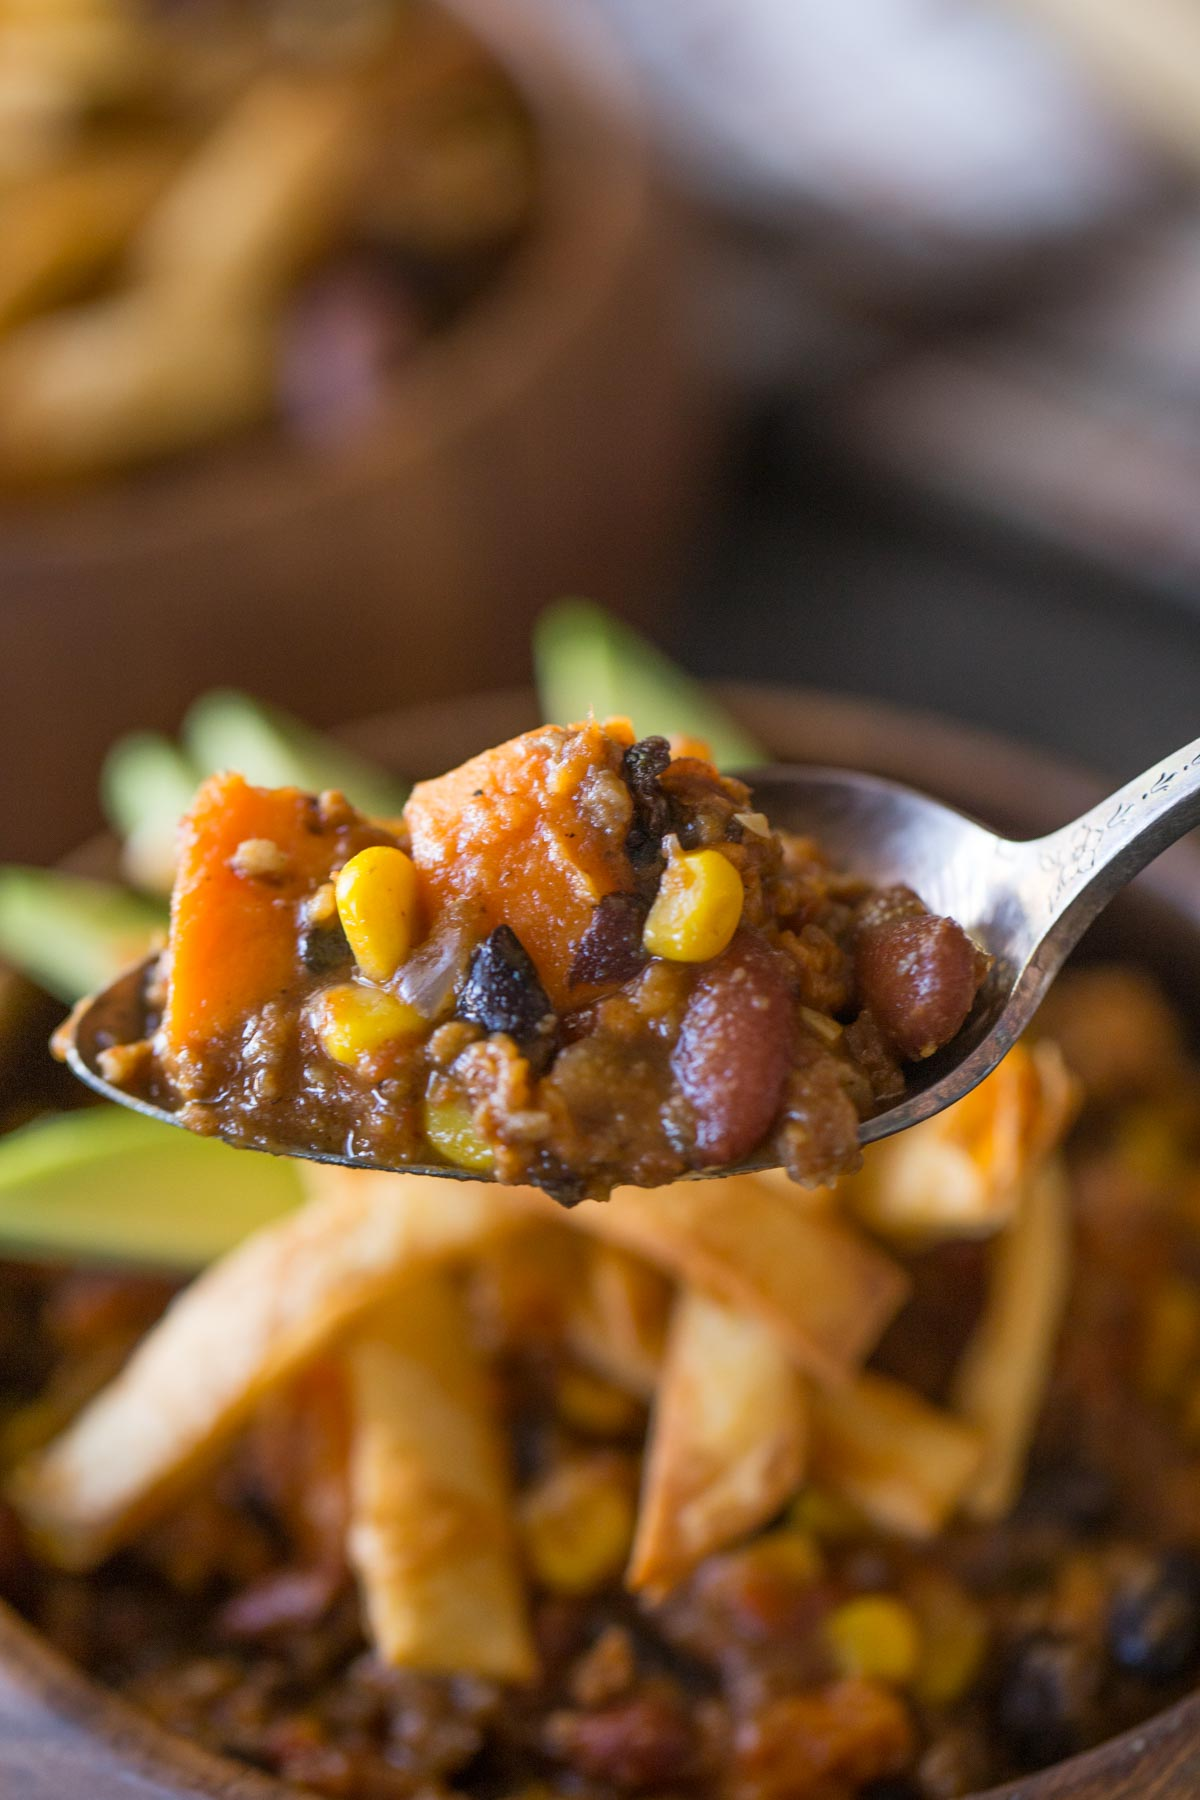 A spoon full of Sweet Potato Chili, with a wood bowl of Sweet Potato Chili, topped with Fried Tortilla Strips and sliced avocado in the background.